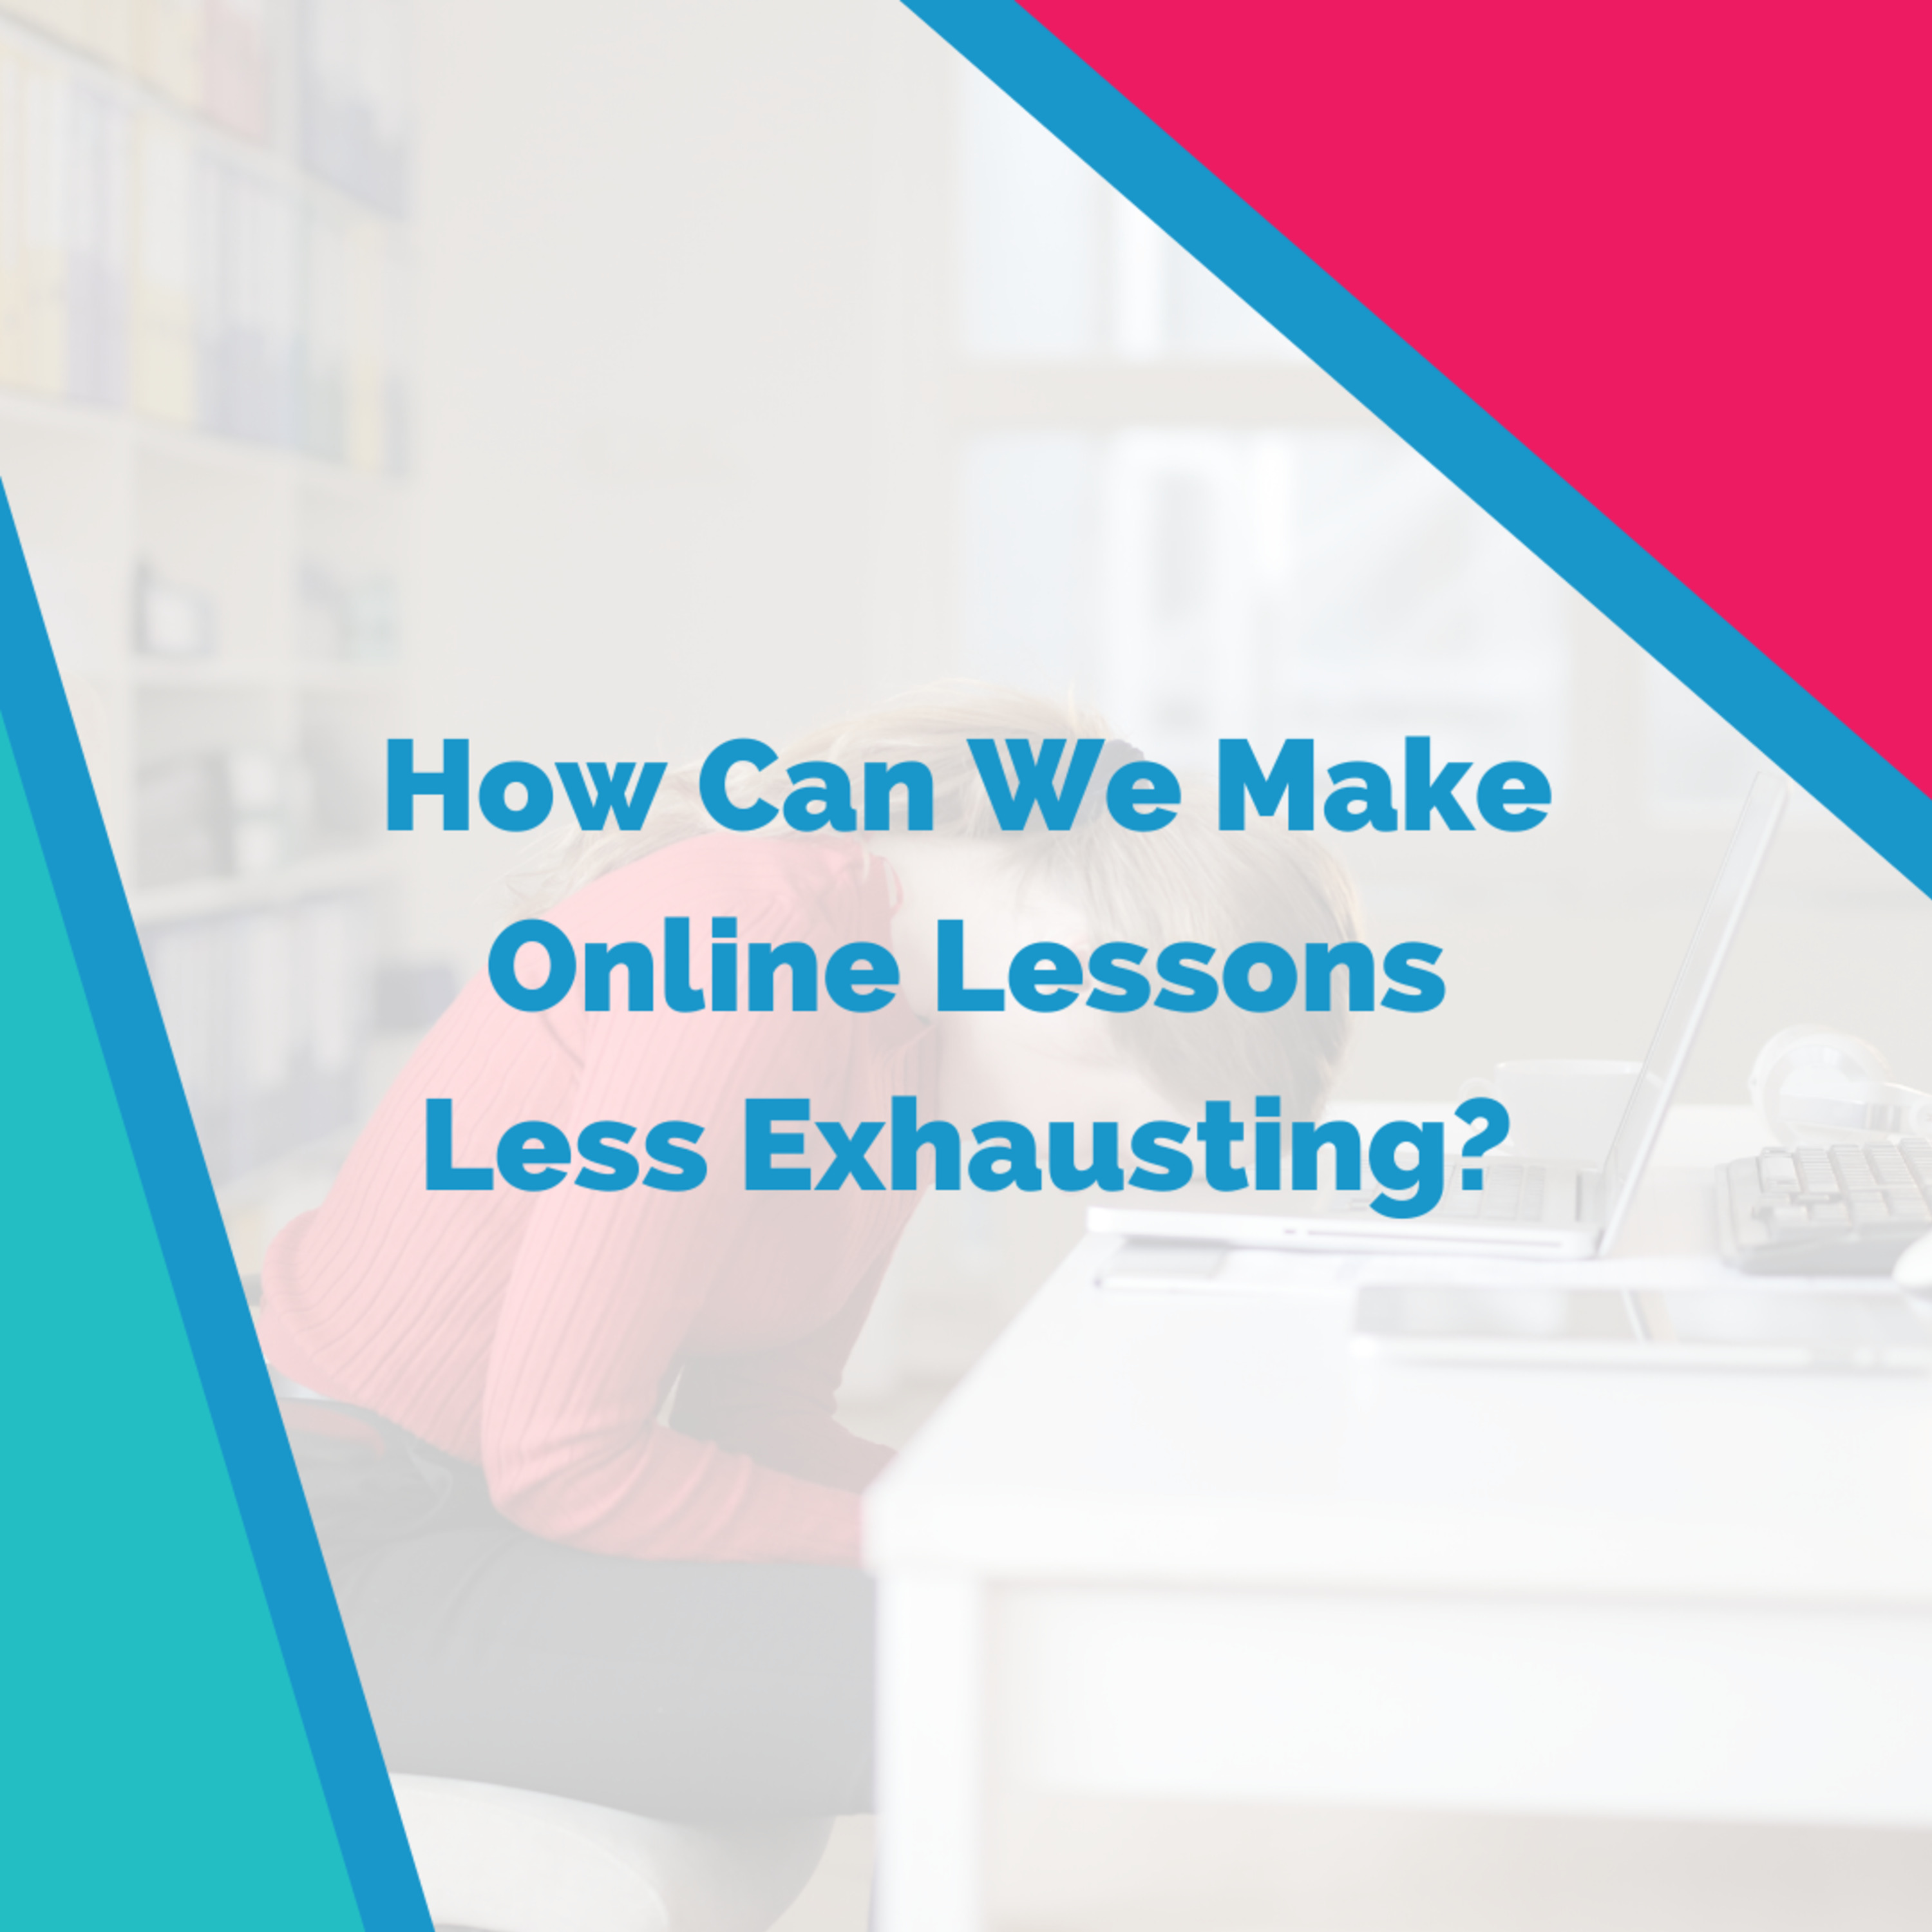 How Can We Make Online Lessons Less Exhausting?